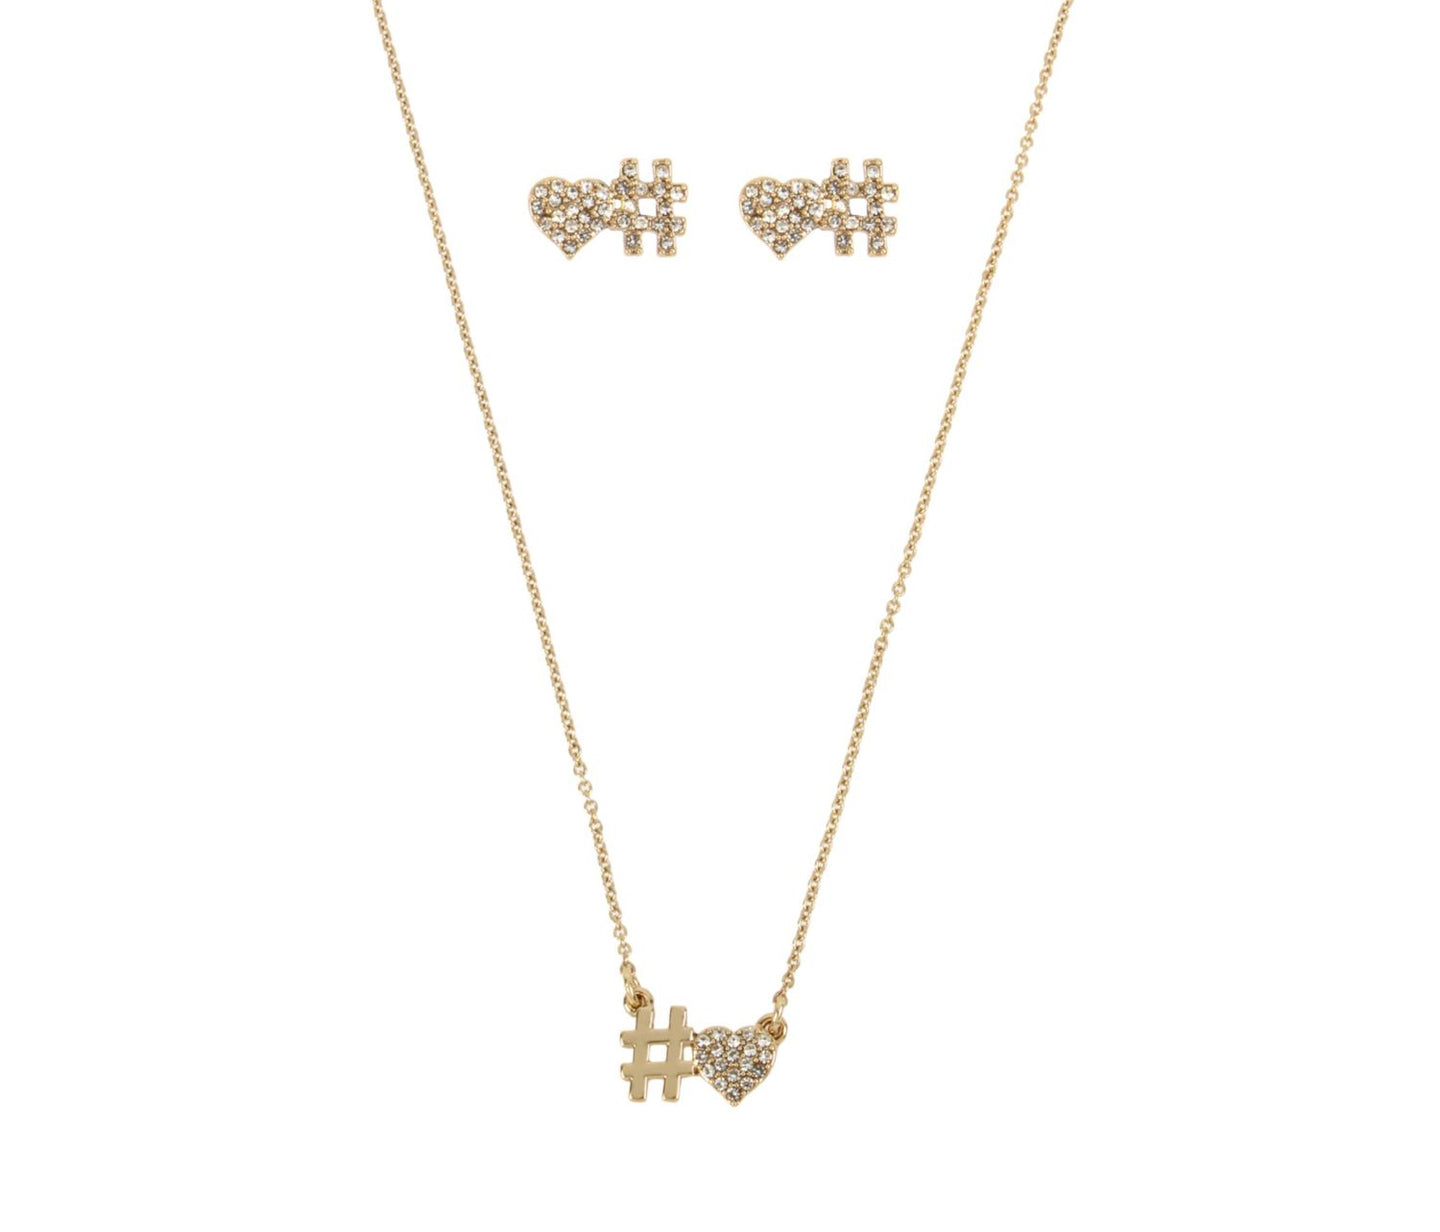 BETSEY BLUE LOVE LETTERS GOLD HASHTAG SET GOLD - JEWELRY - Betsey Johnson